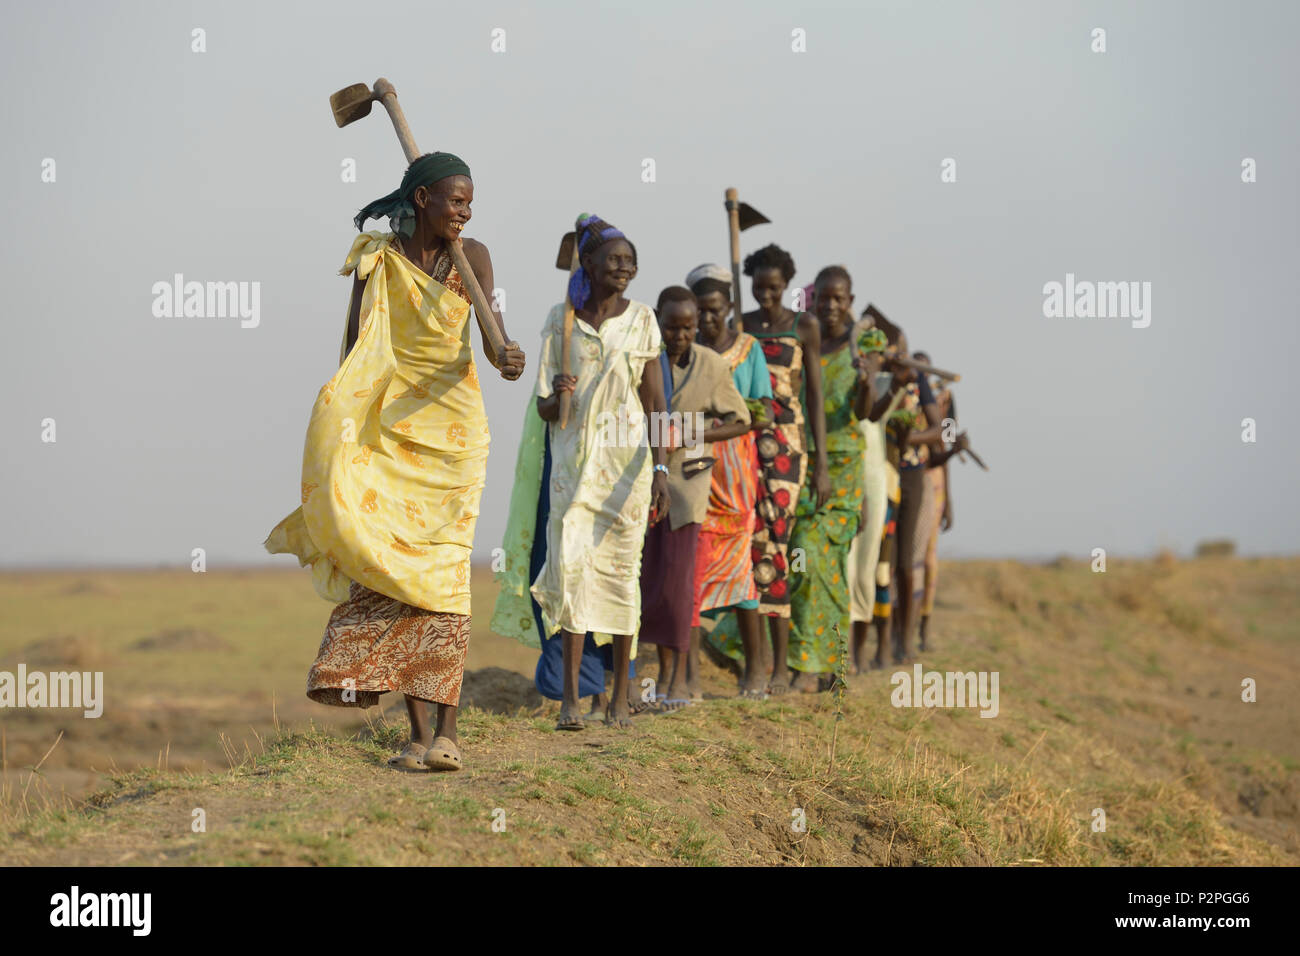 After working together in a community garden, Adhieu Deng Ngewei and her neighbors sing and dance as they walk home in Dong Boma, South Sudan. - Stock Image